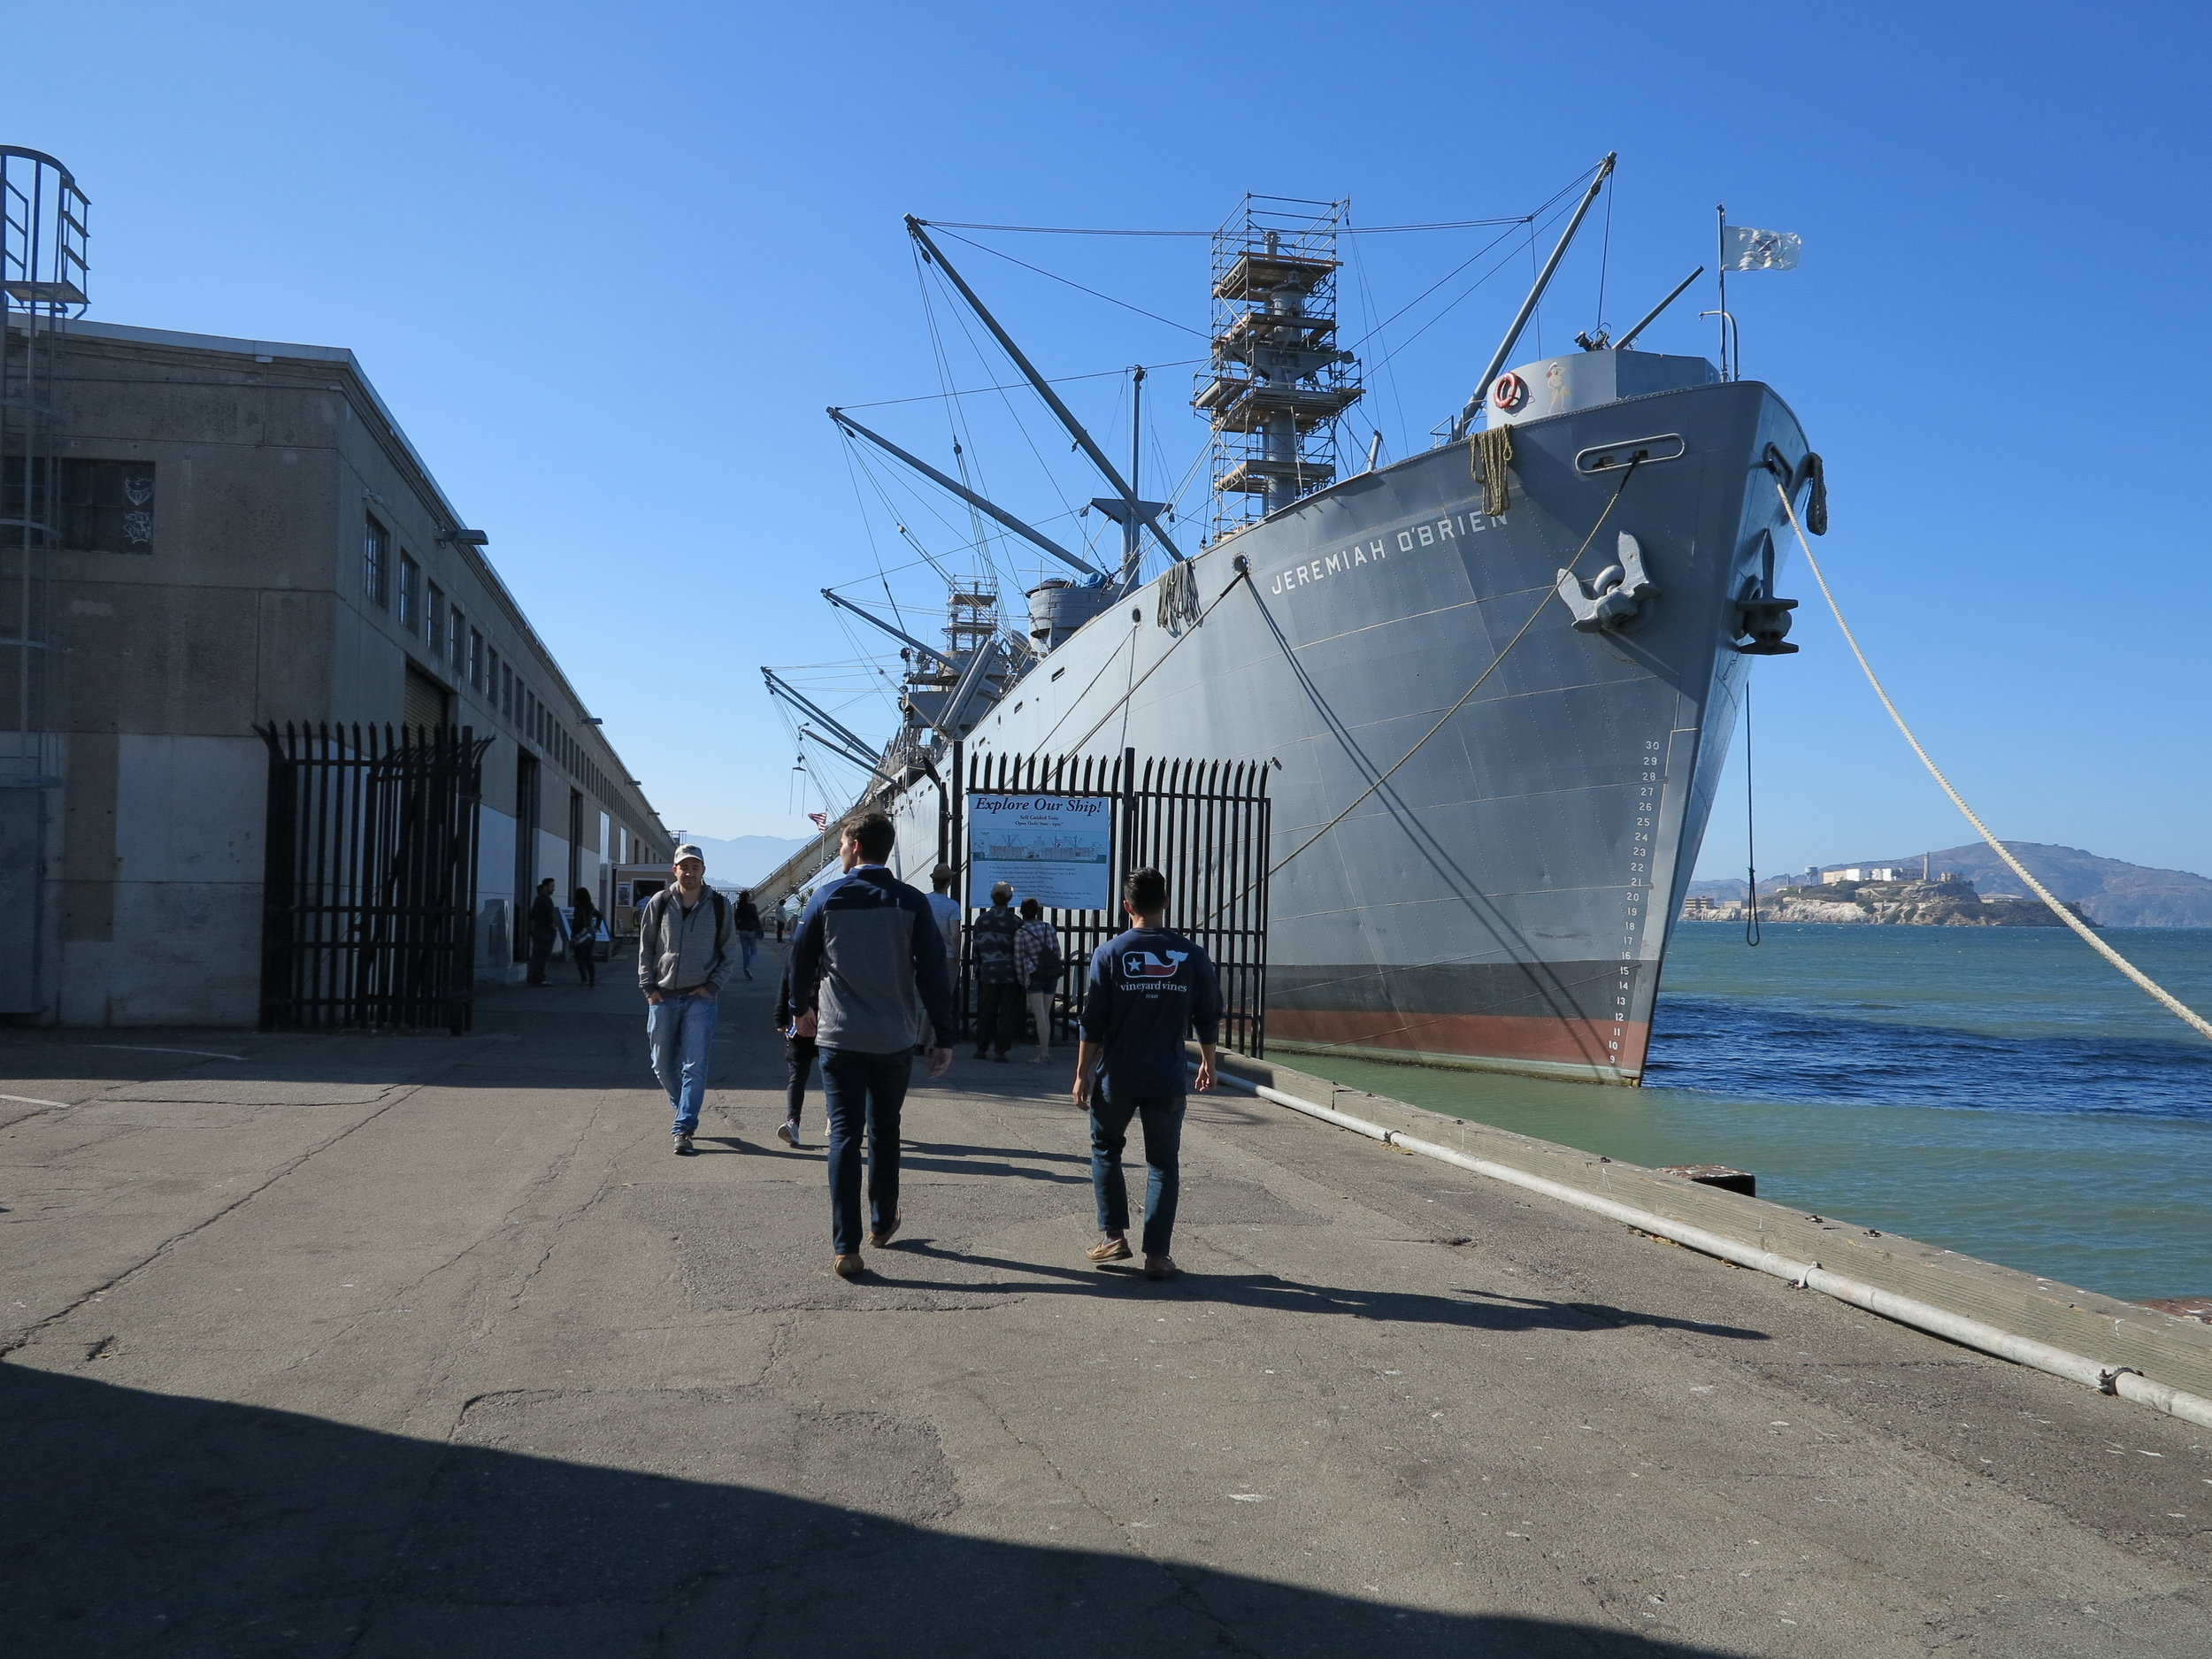 We walked towards Fisherman's Wharf and spotted these WWII ships and had to check them out. They were huge!